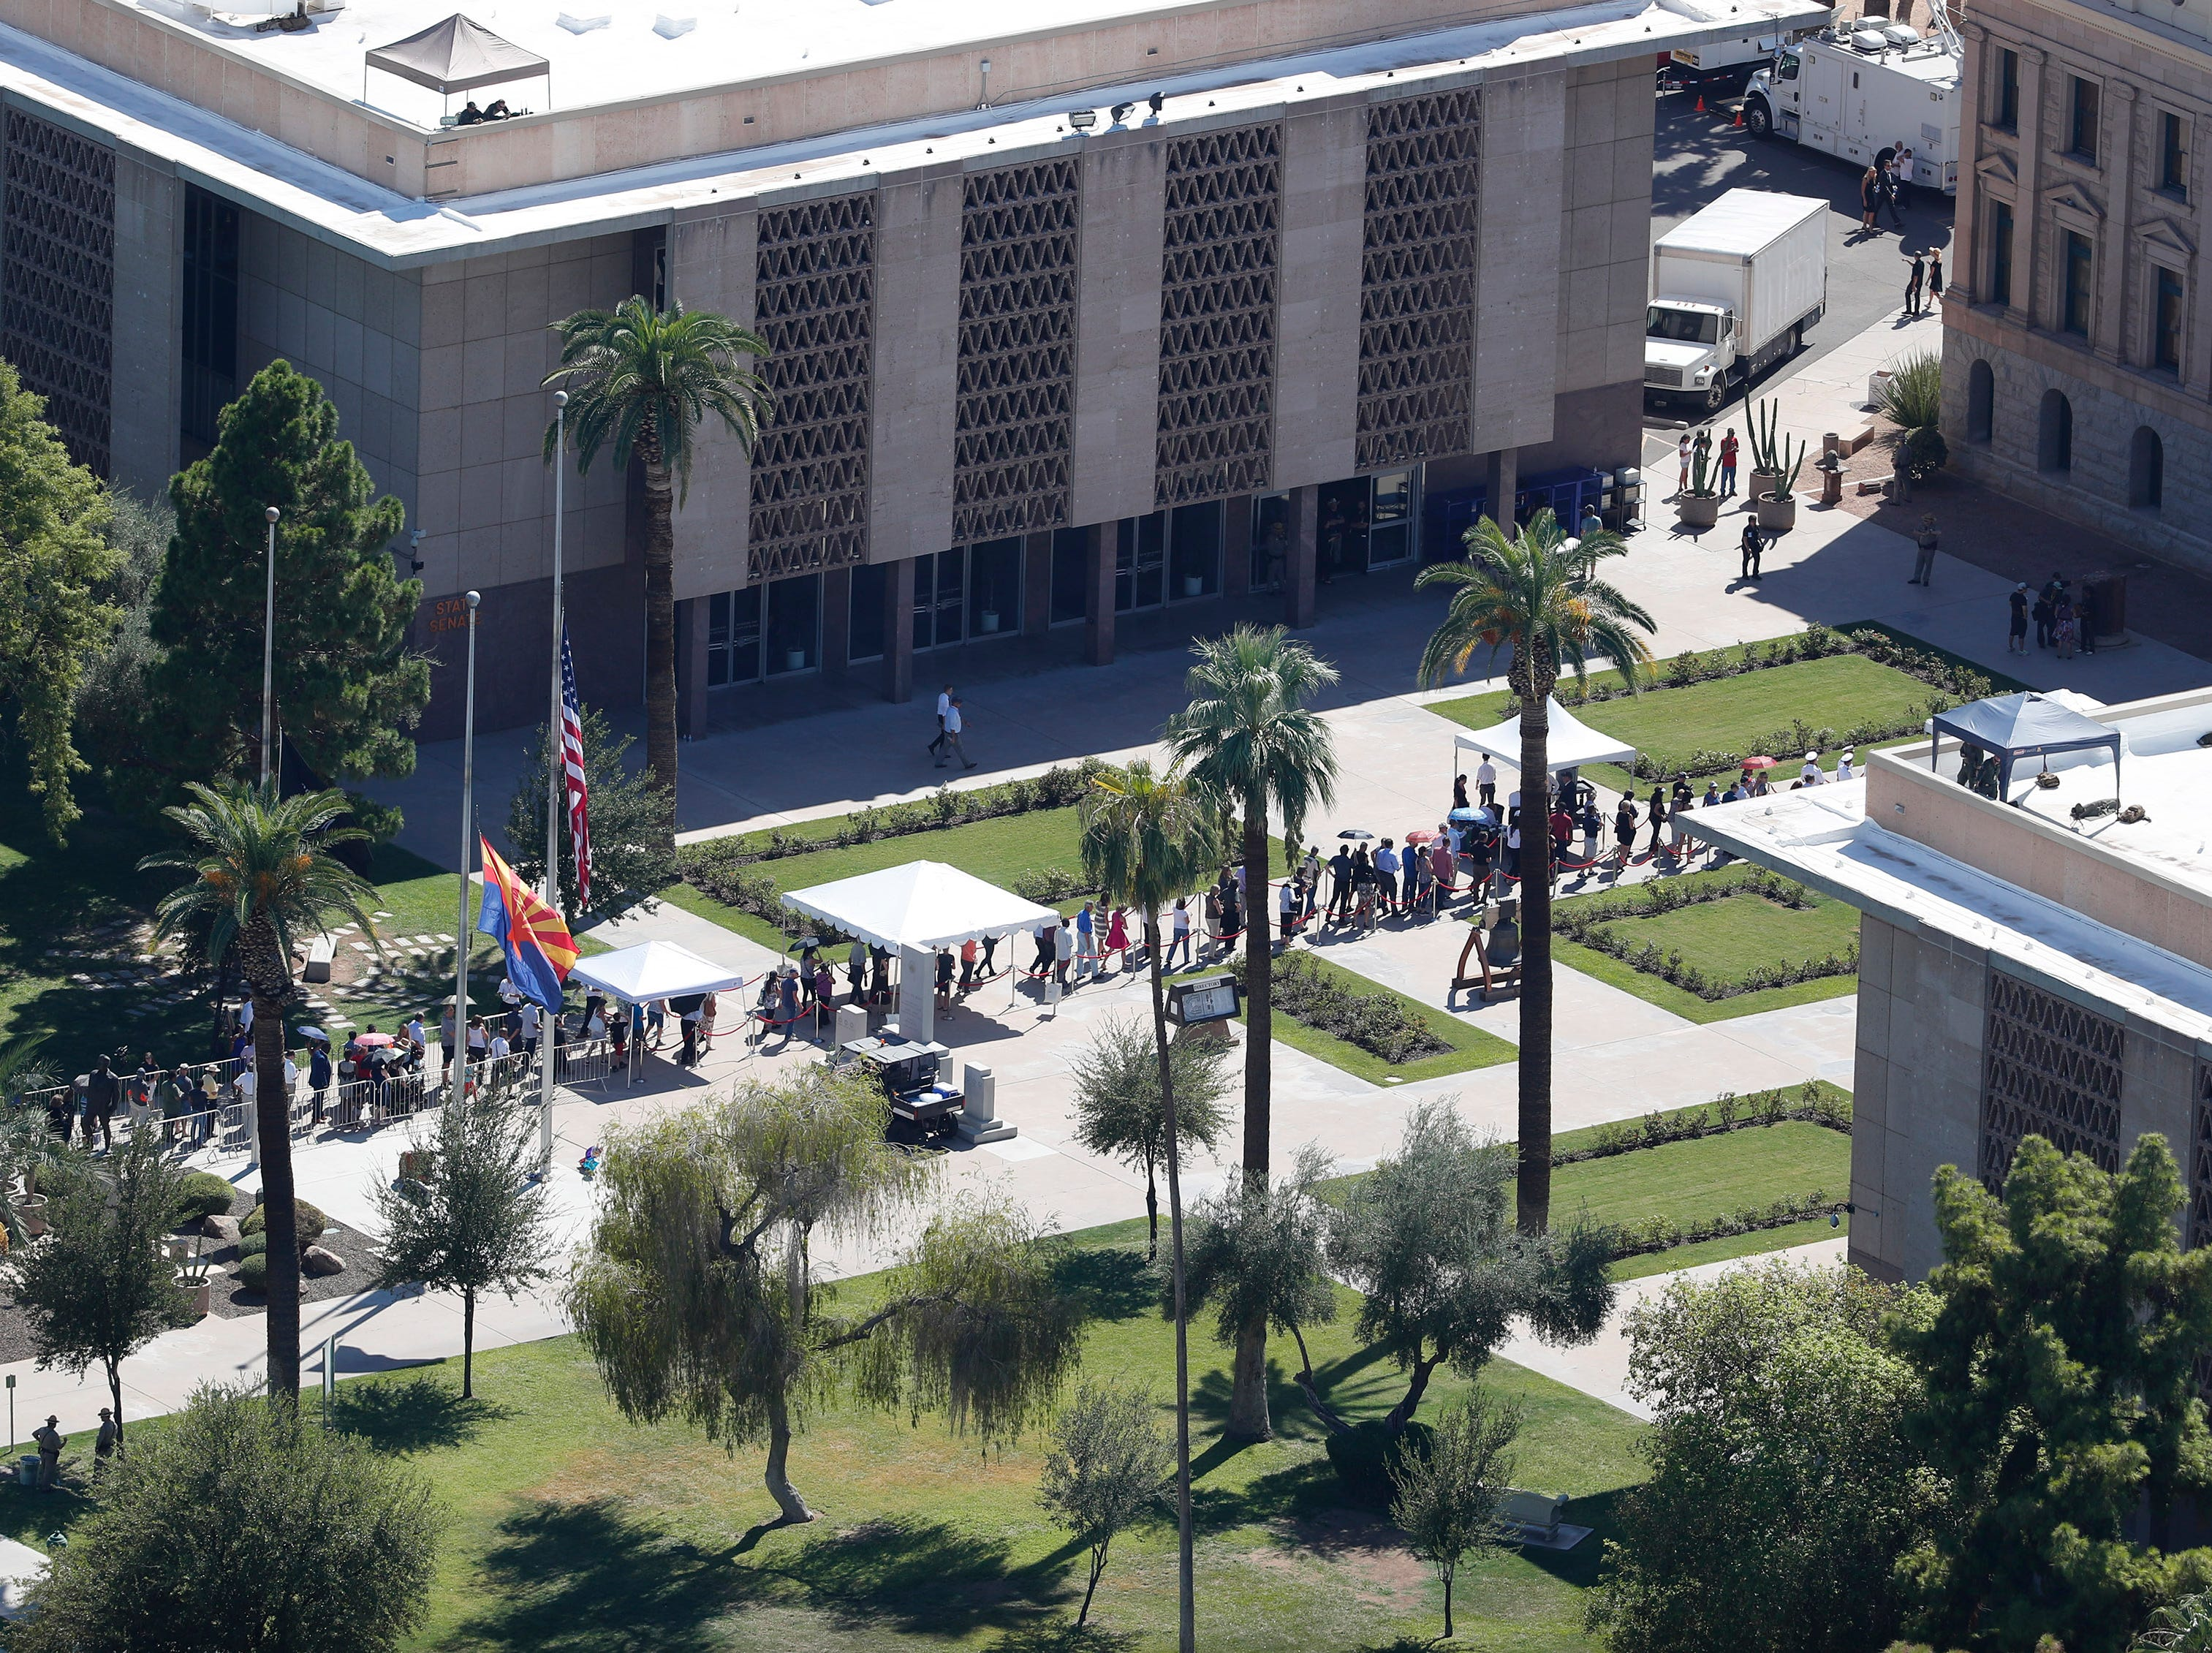 People line up outside the Arizona state Capitol, where Sen. John McCain lies in state in Phoenix Aug. 29, 2018. The six-term Arizona senator died Saturday after a 13-month battle with brain cancer.